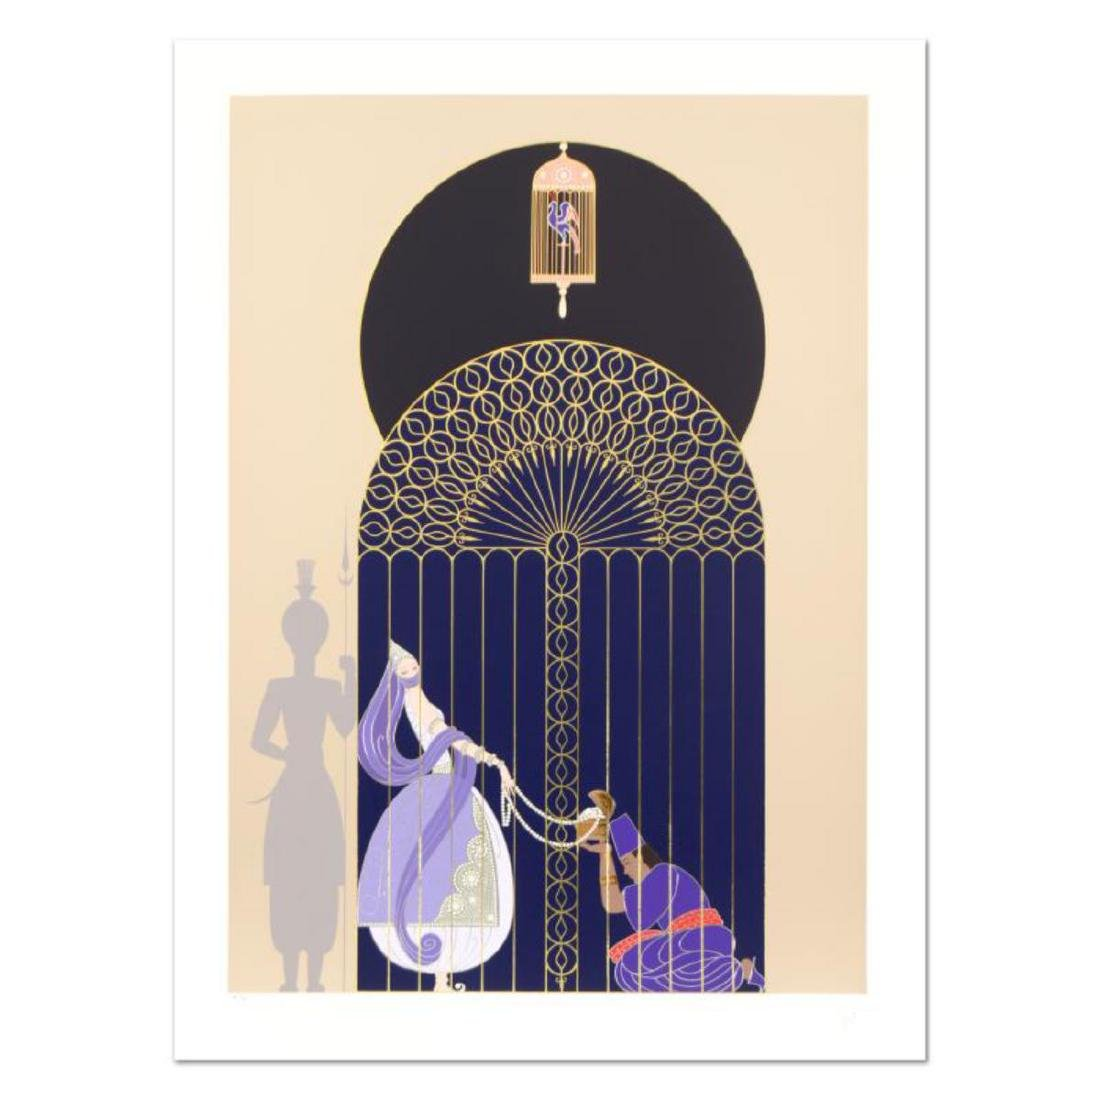 "Erte (1892-1990), ""Bird in a Gilded Cage"" Limited"